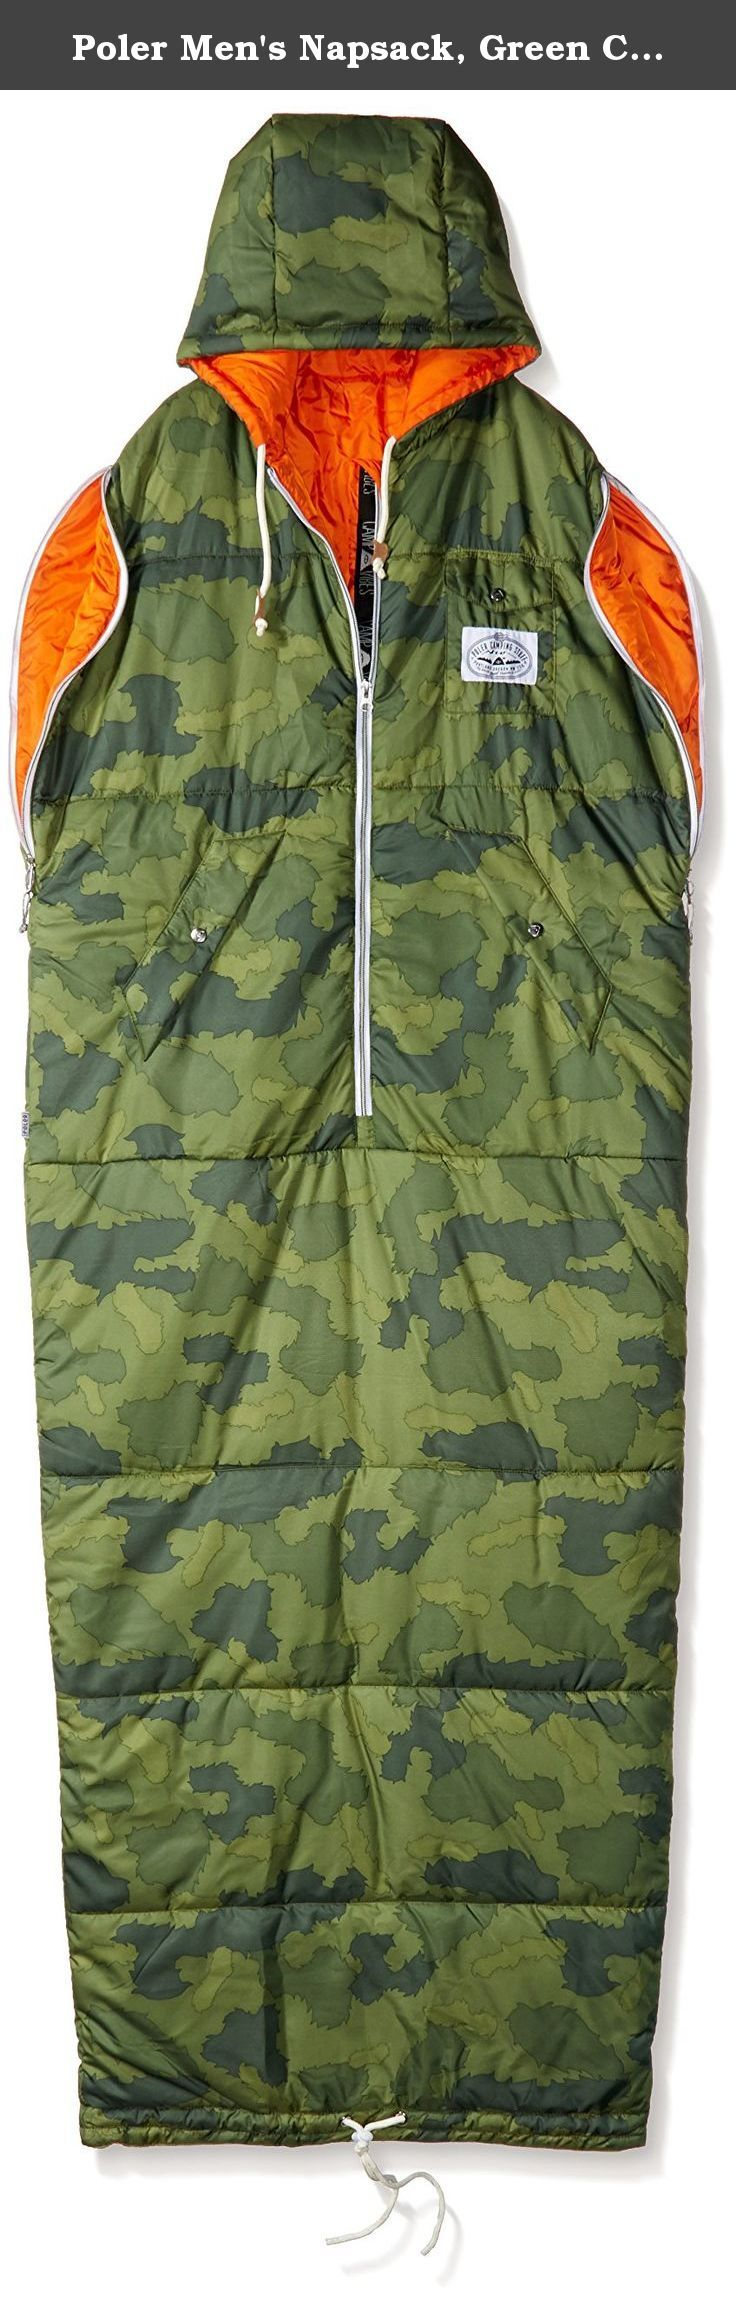 Poler Men's Napsack, Green Camo, Large. A wearable sleeping bag - perhaps the coolest invention ever. Perfect for summer trips, couch surfing, jumping into after outdoor fun (snowboarding, skiing, surfing, and tailgating) or any other activity that brings your core temp down. Hike it up to your waist, cinch it and wear it like a coat around the campsite, then crawl back into your tent (or couch) without ever having to leave the warmth of your bag. Lounge- unzip the armholes, read a book…